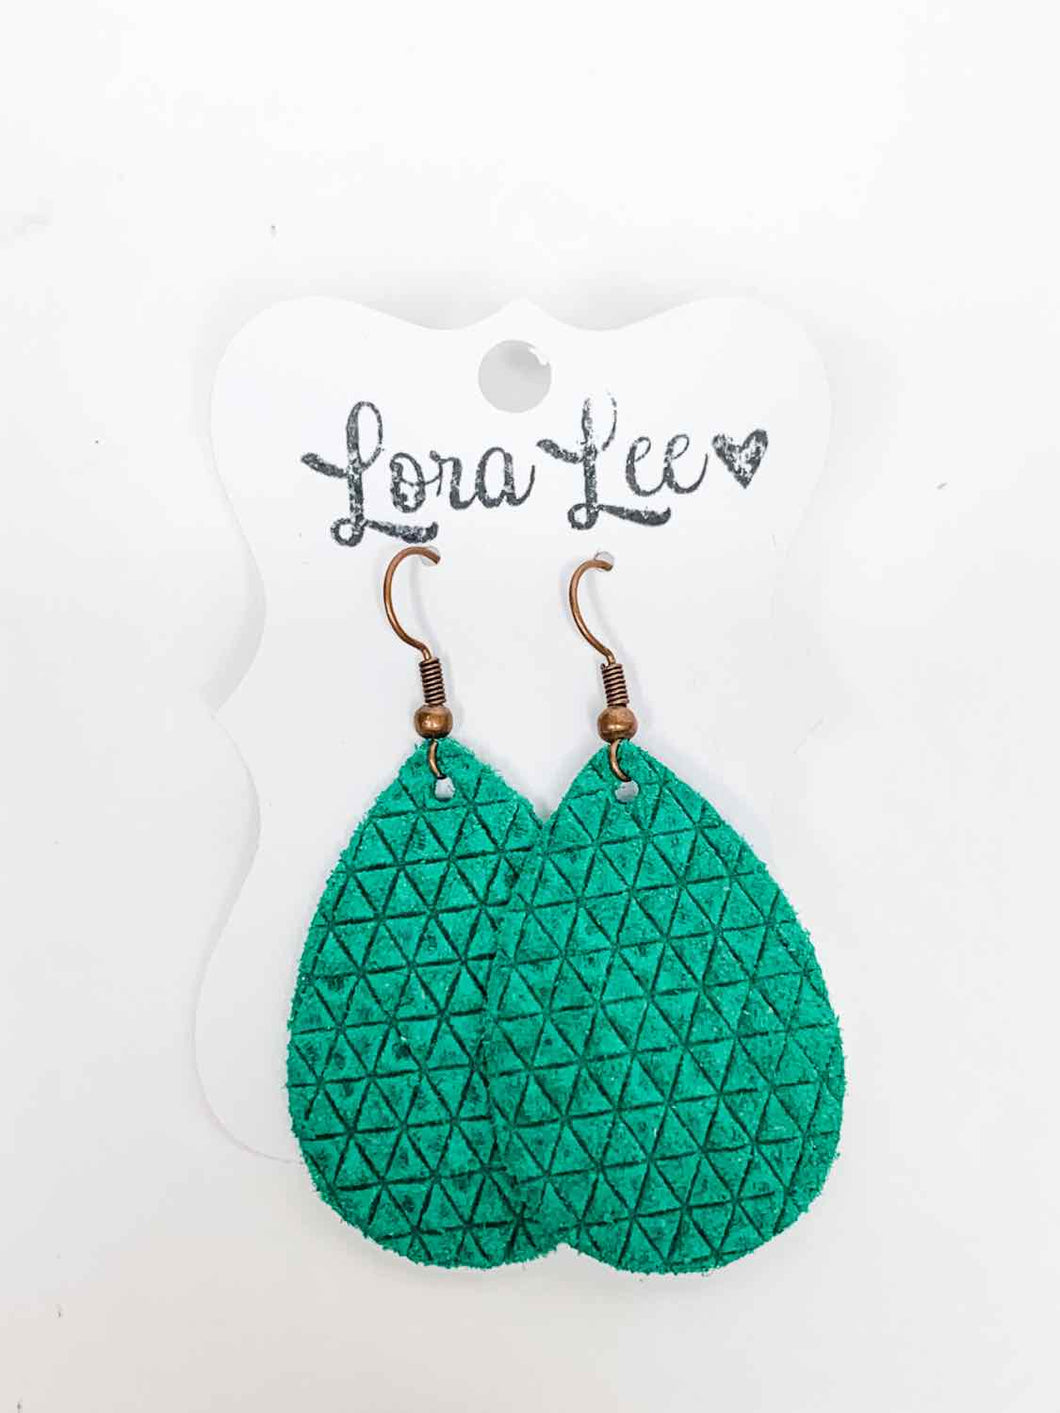 Kelly Green Leather Earring - Small Teardrop